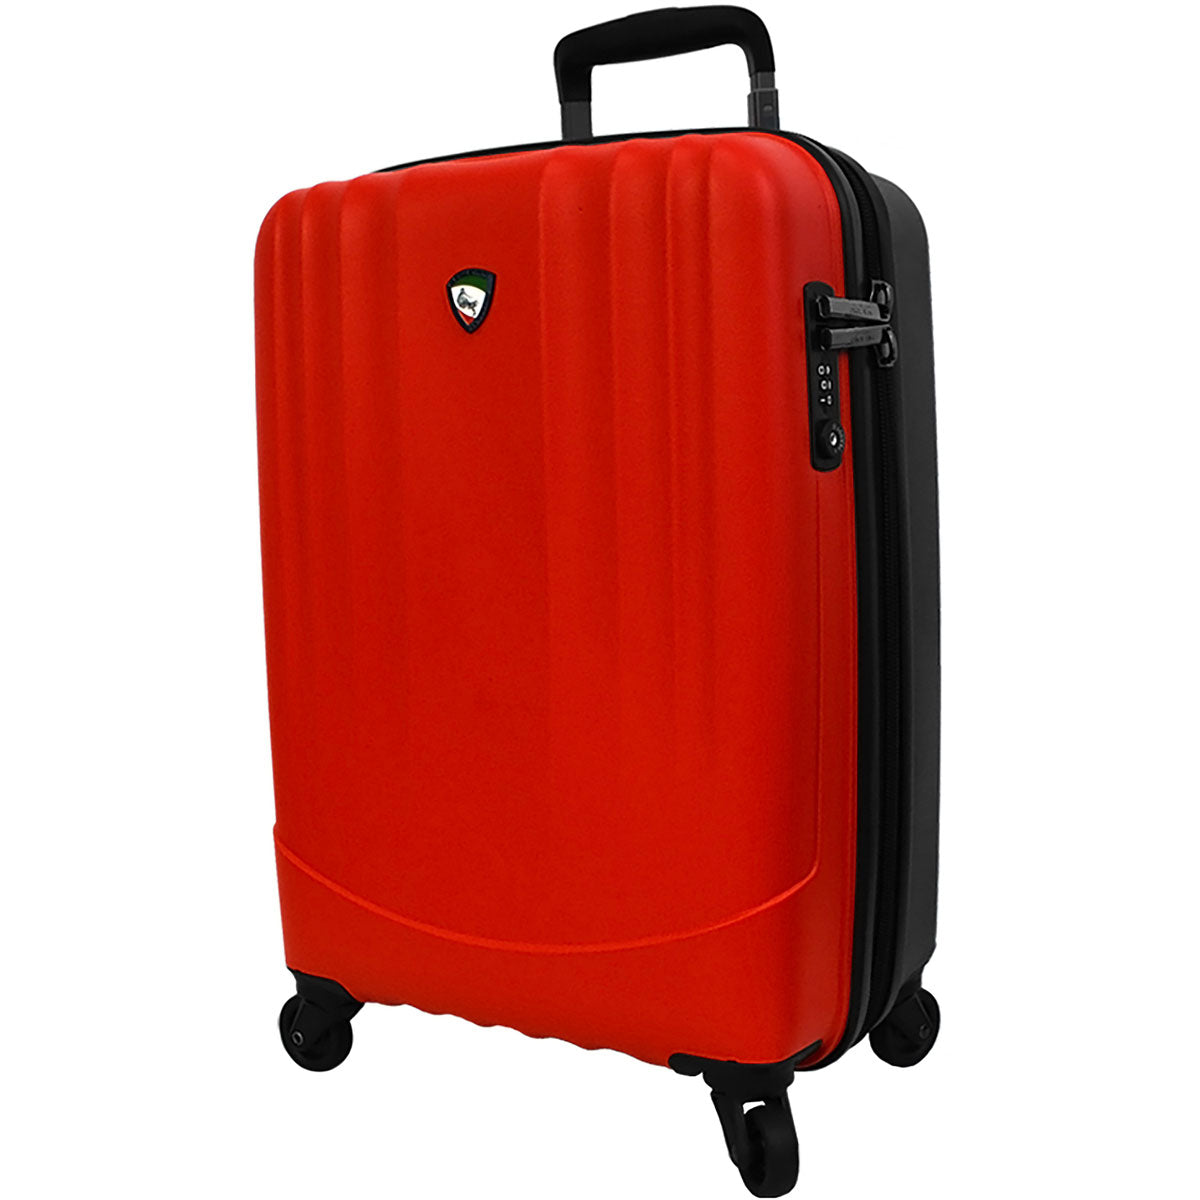 Mia Toro Polipropilene Hardside 28in Spinner - Luggage Factory